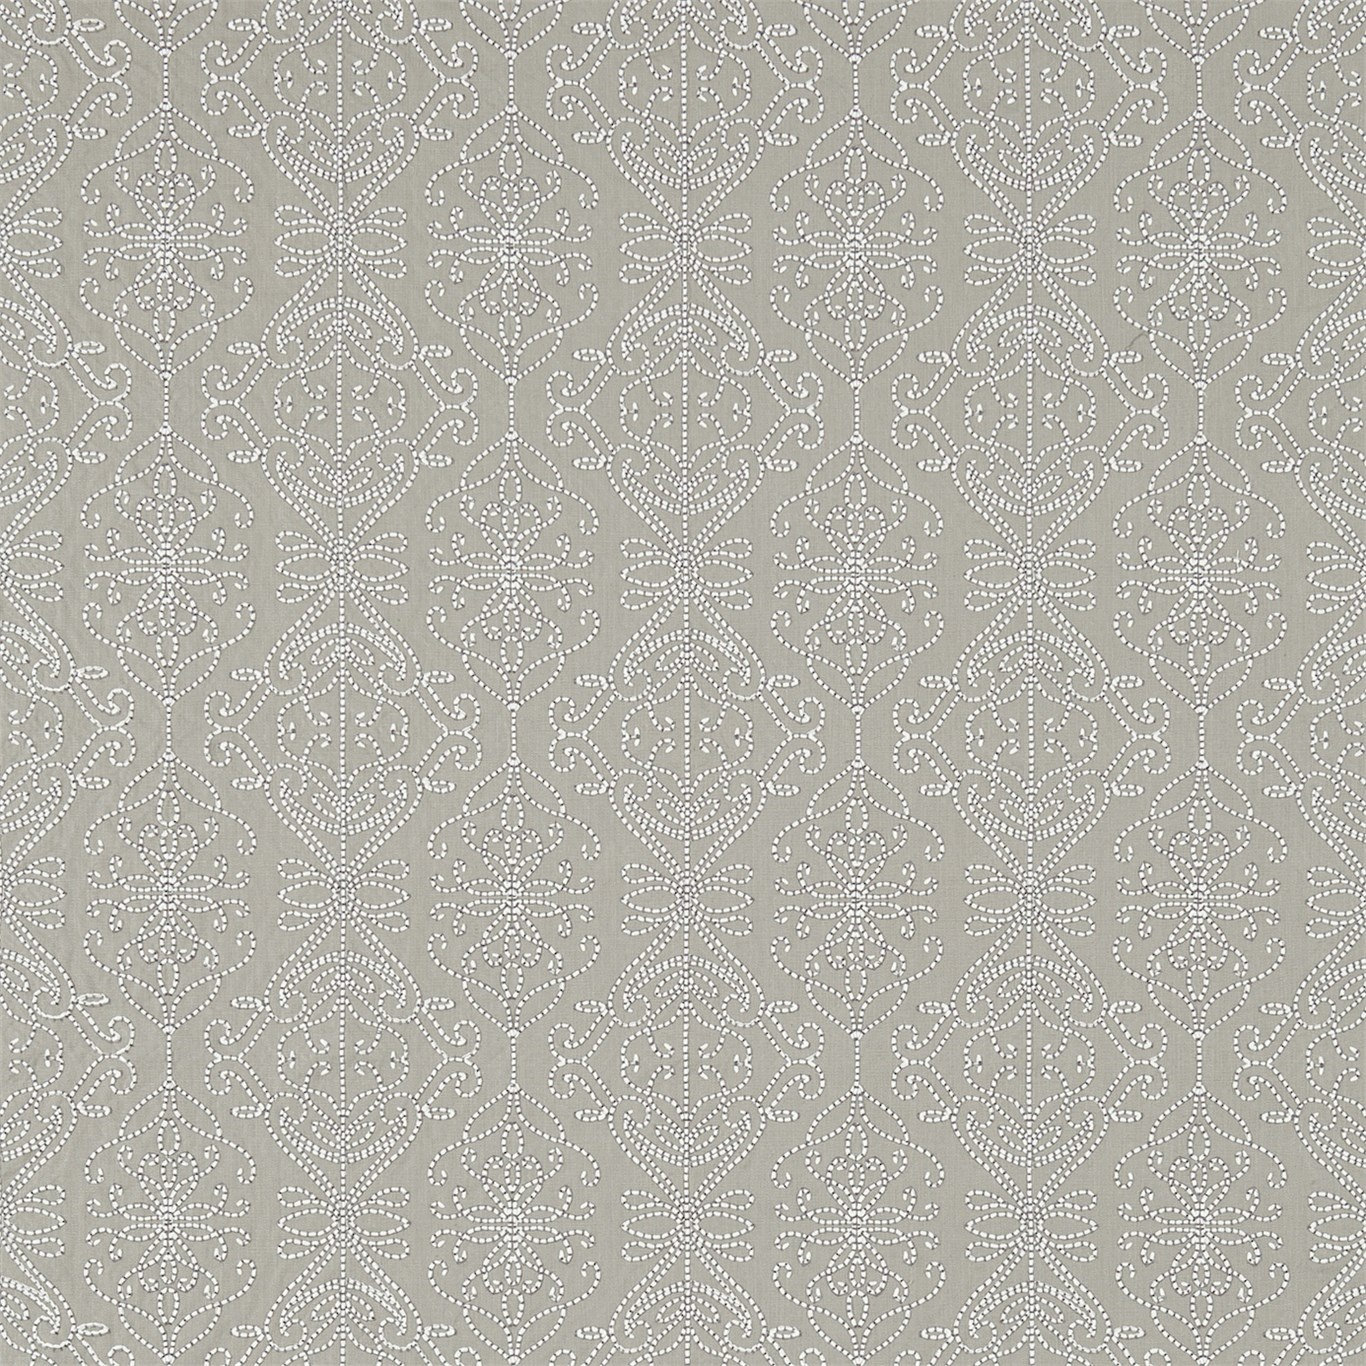 Image of Harlequin Java Stone/Charcoal Curtain Fabric 131514